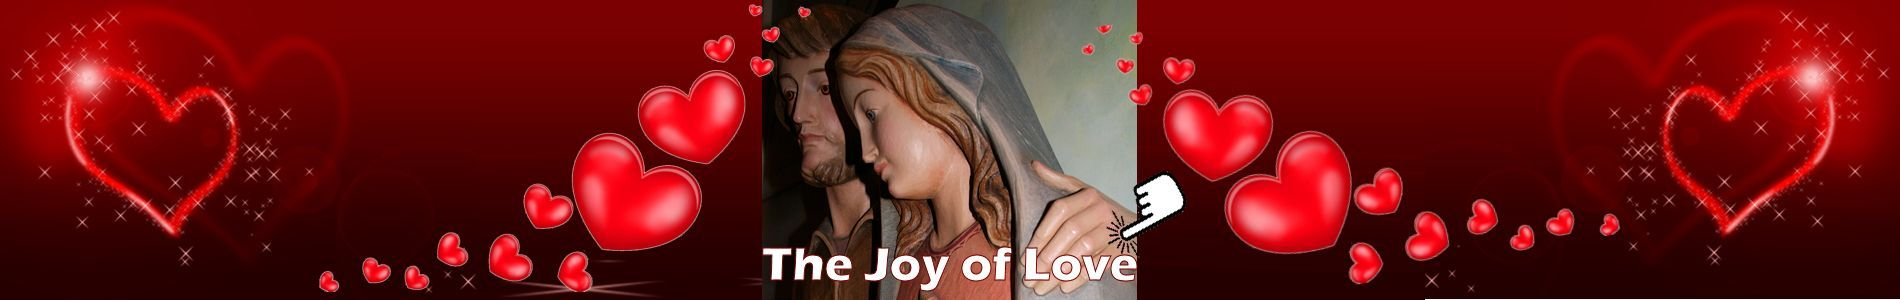 Joy of Love header